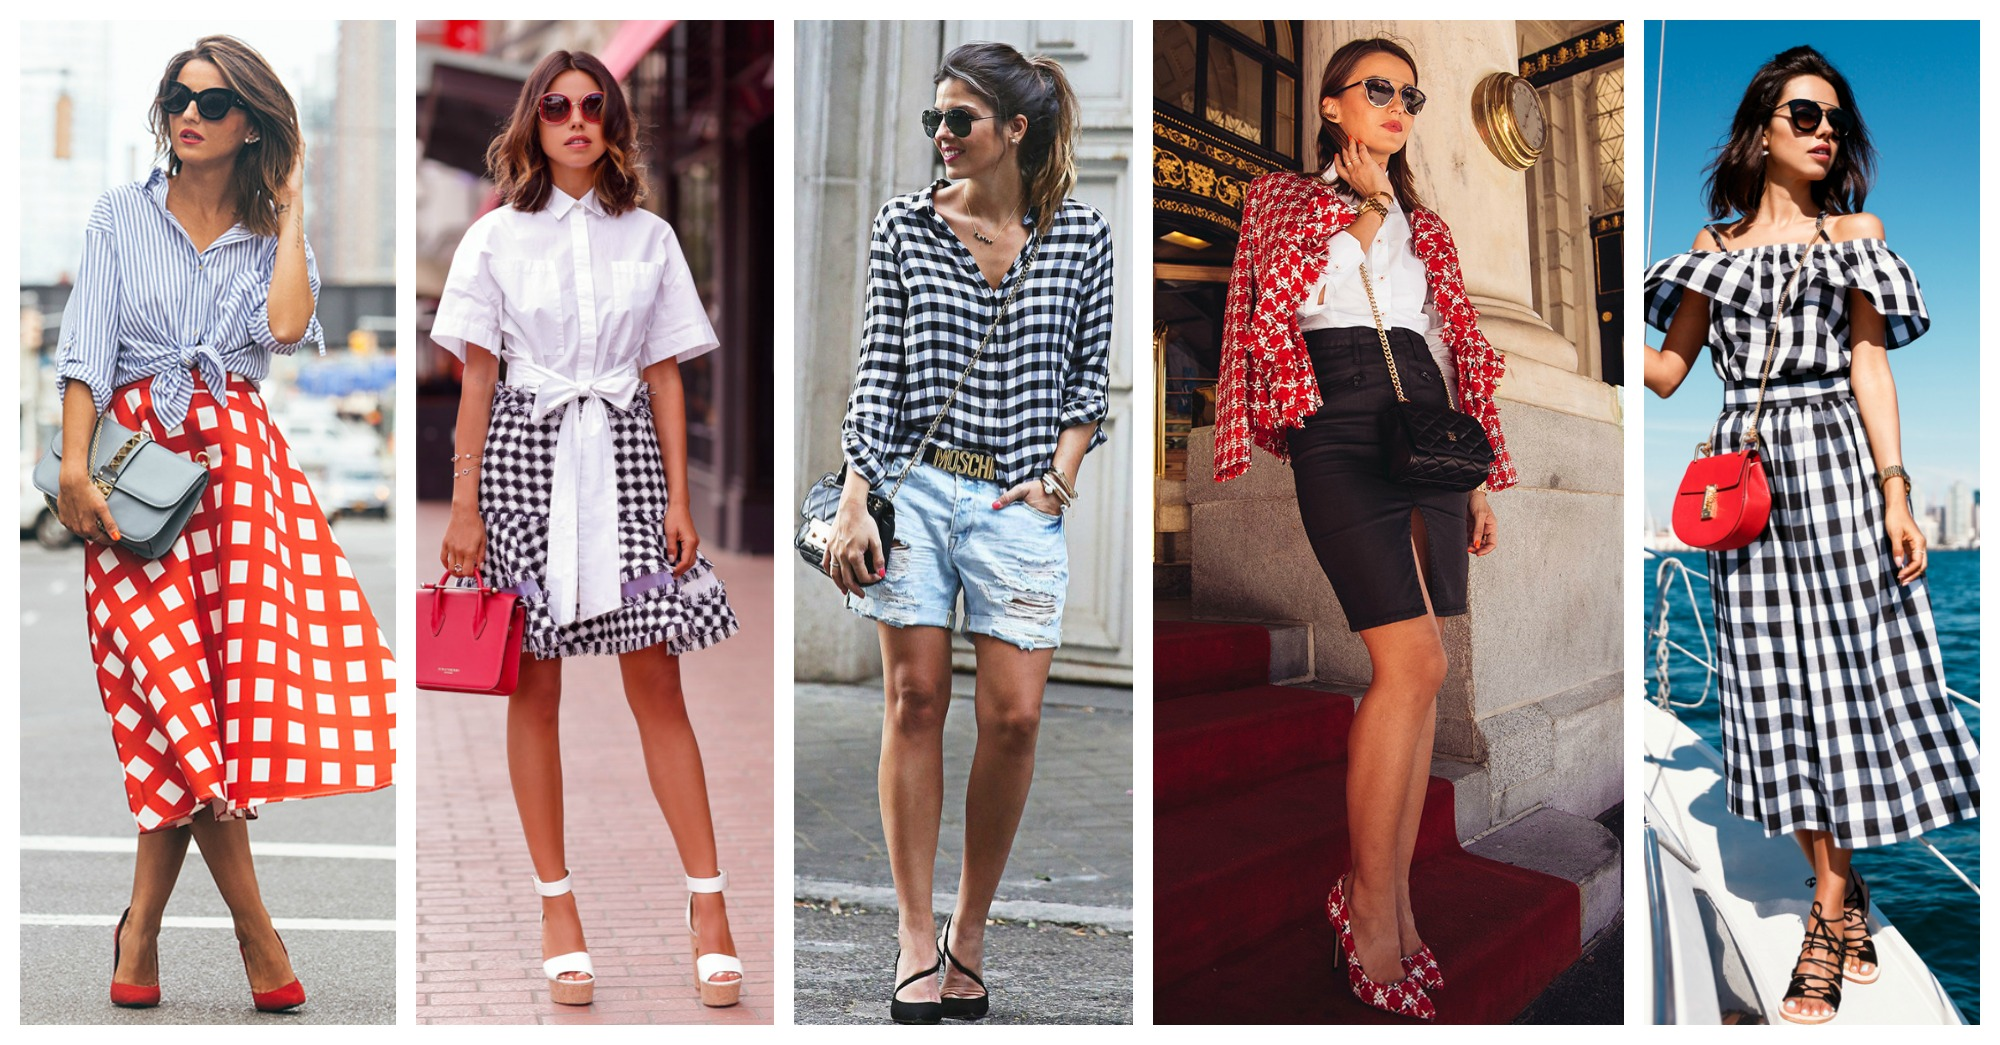 11 Stylish Ways to Pull Off the Gingham Trend This Spring